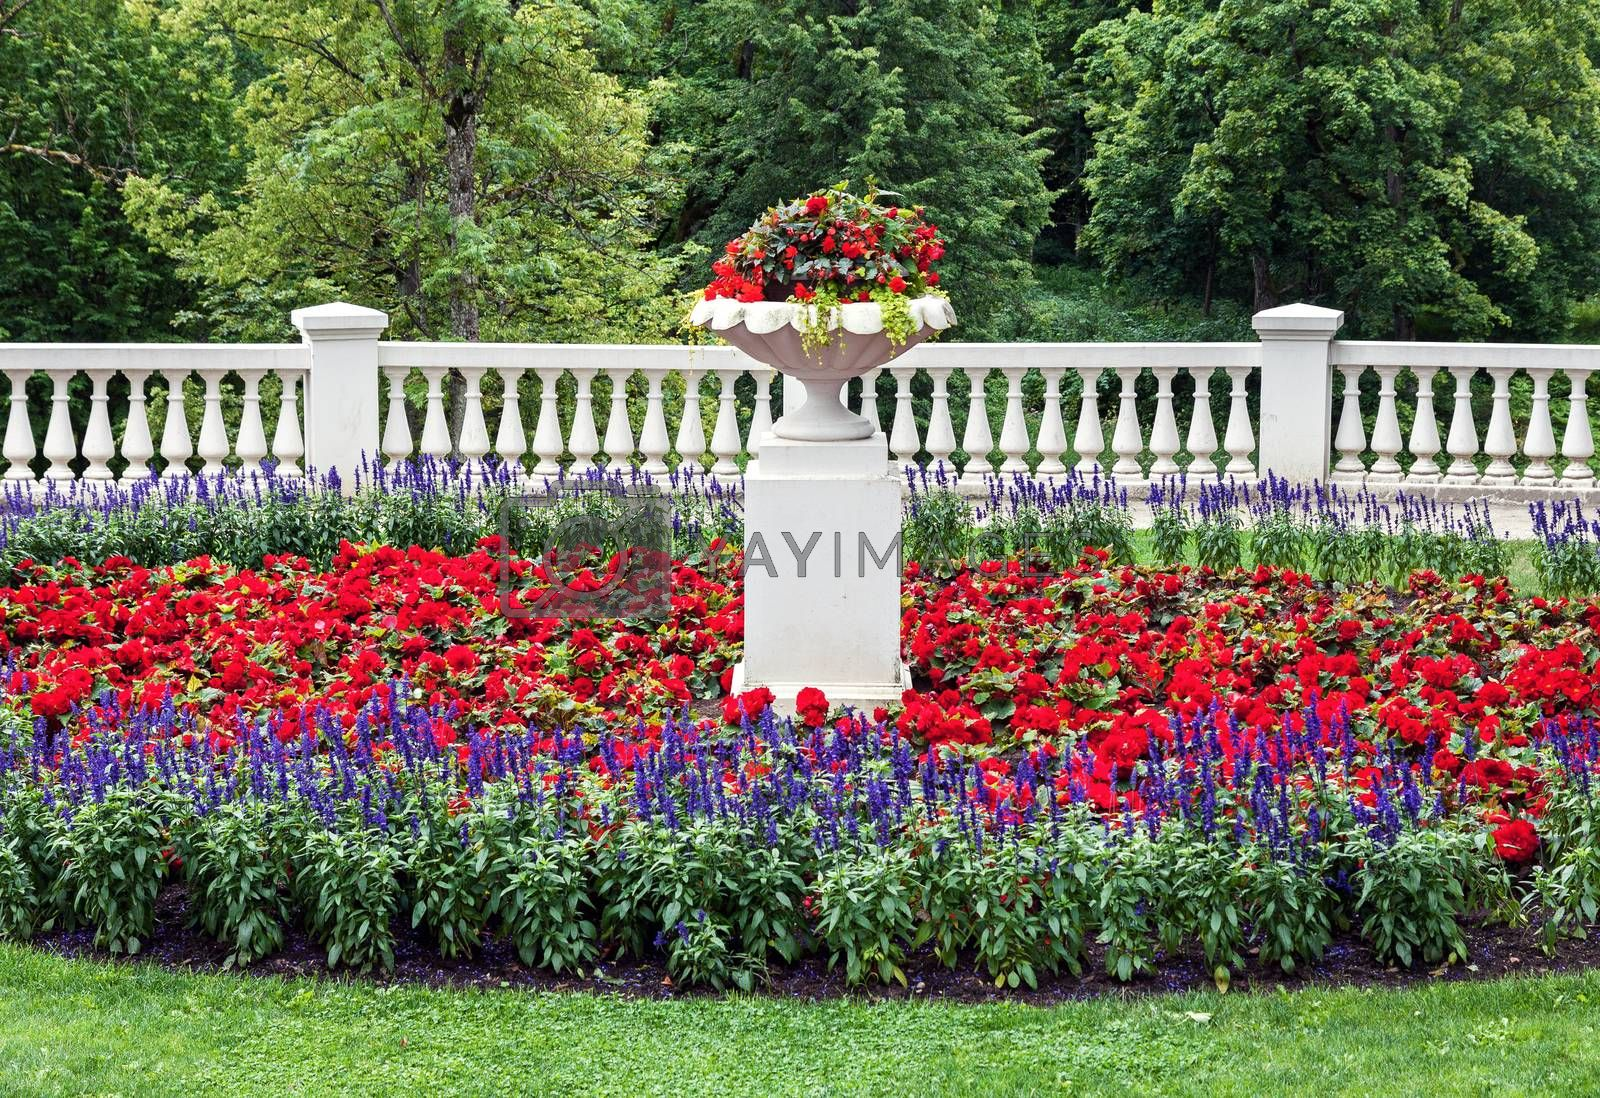 Landscaped flowerbed with classic architecture details   by Vaidas Bucys